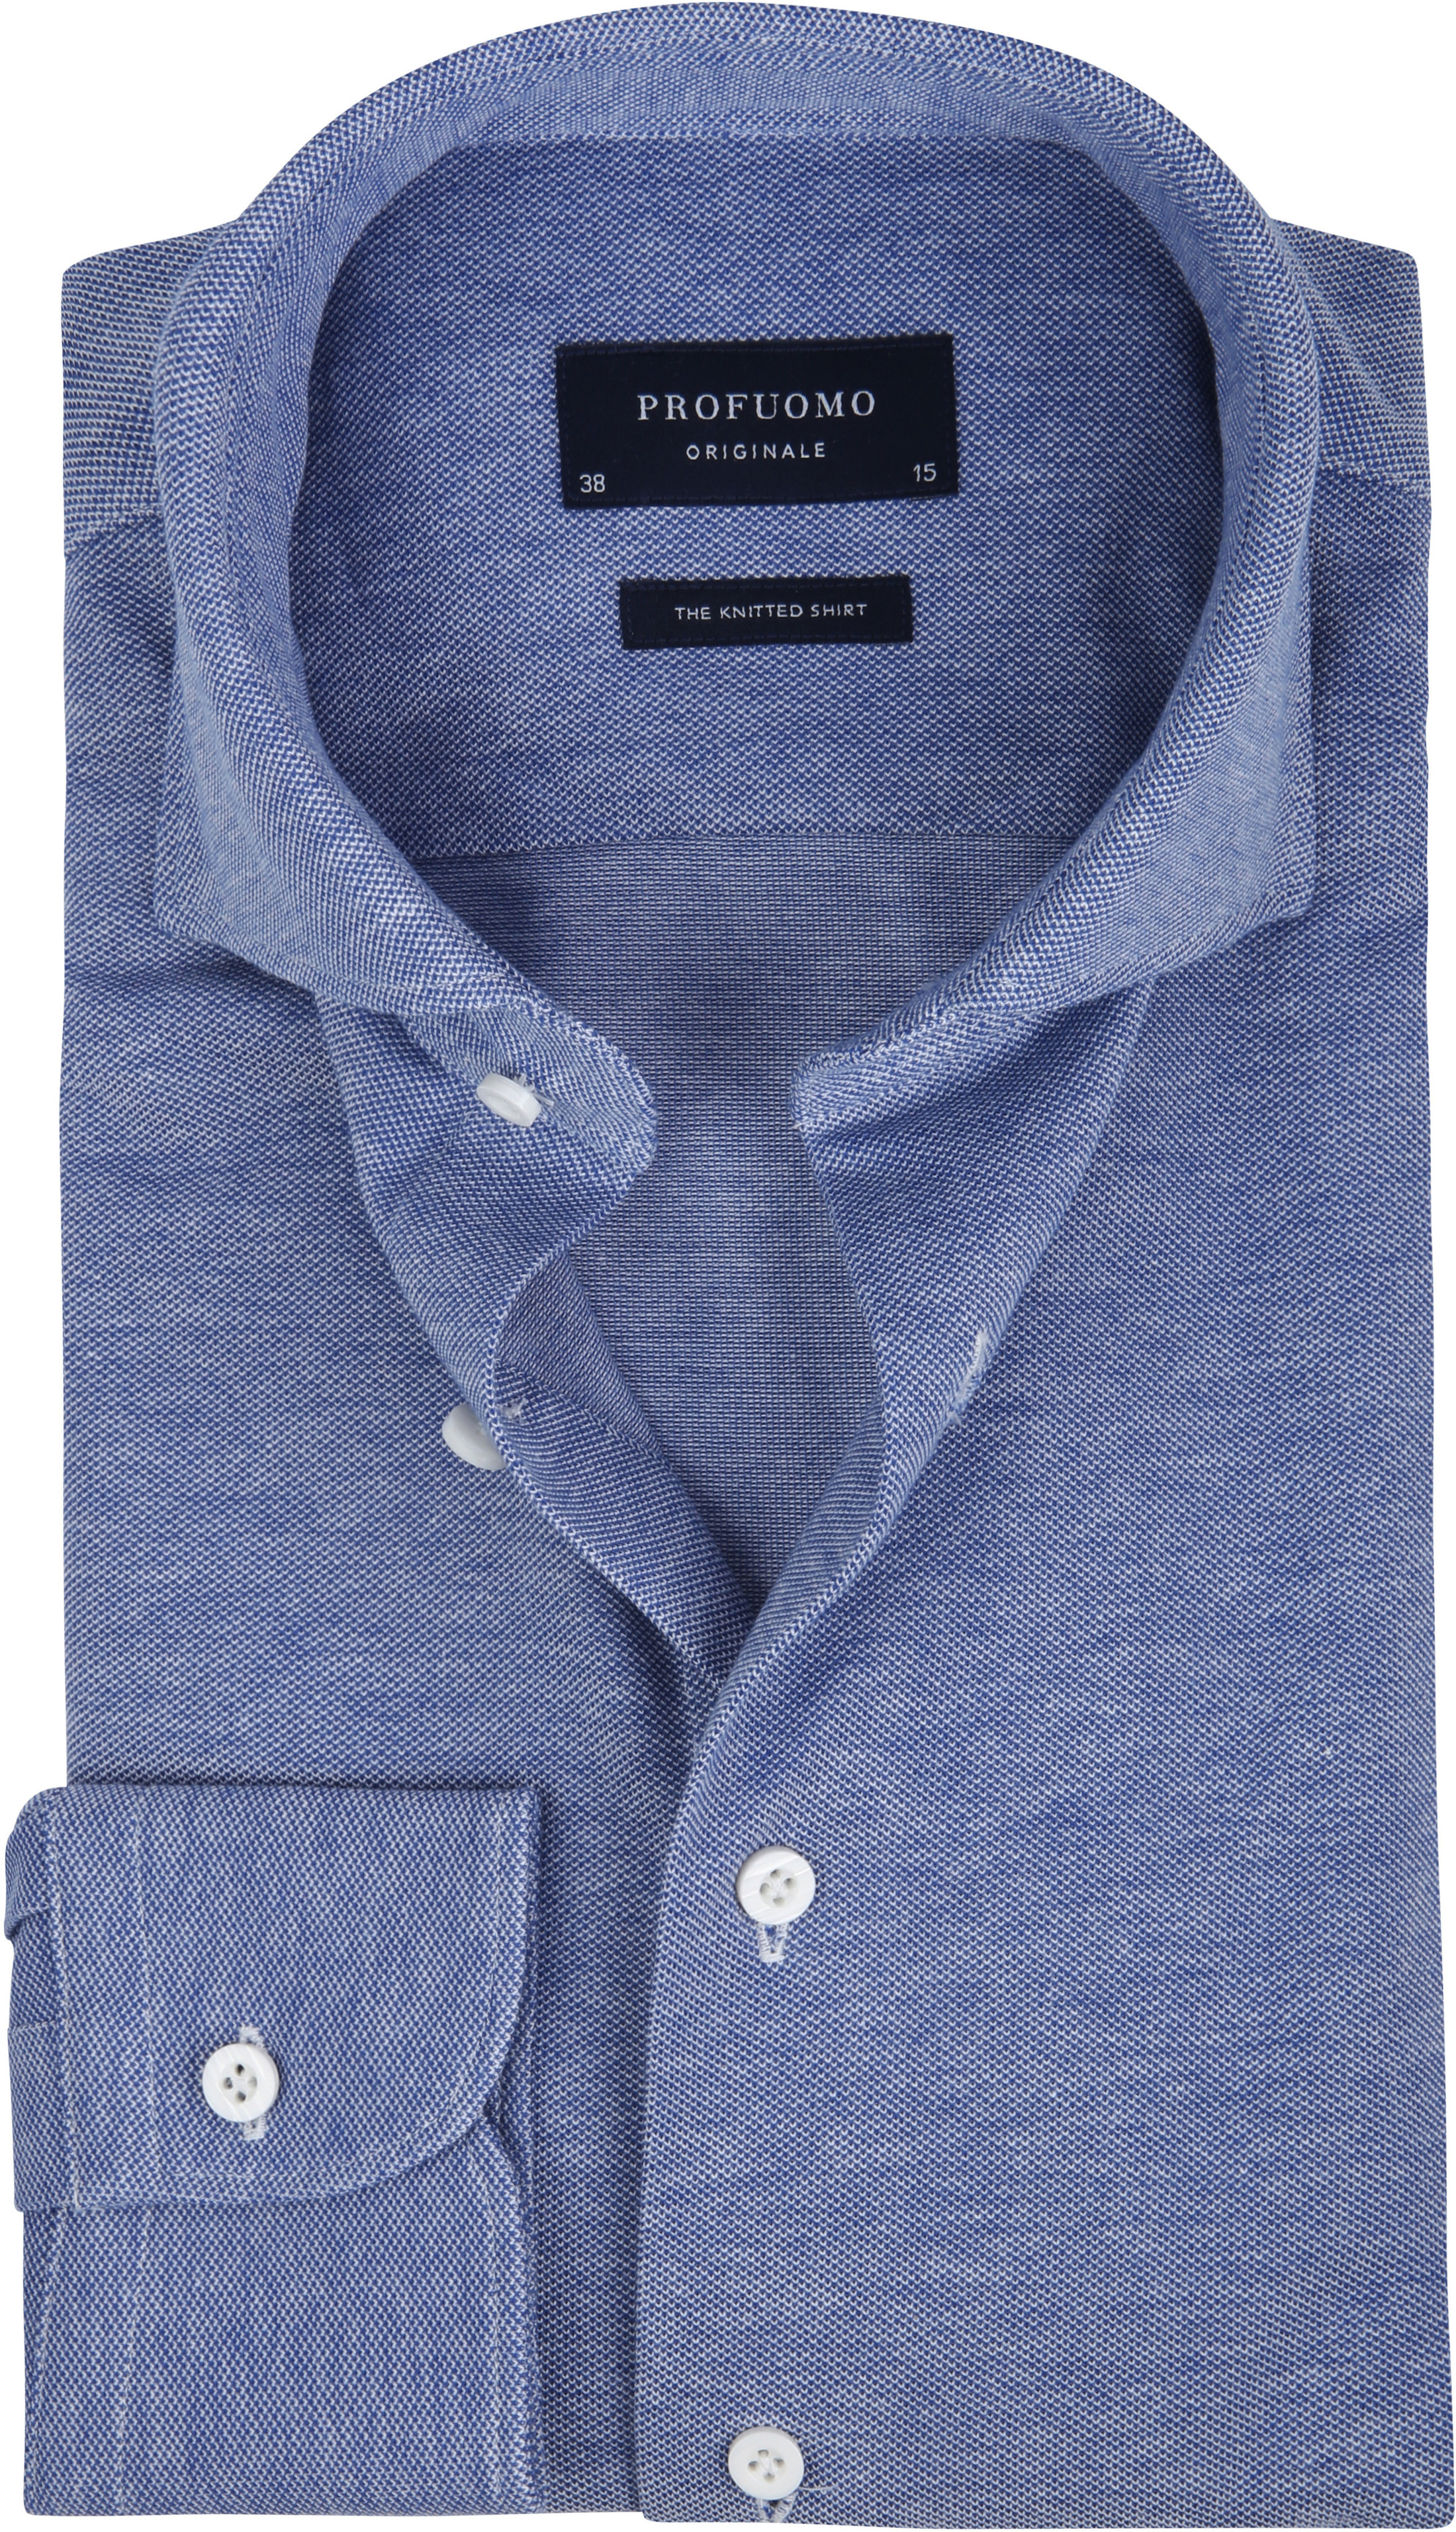 Profuomo Shirt Knitted Mid Blue foto 0